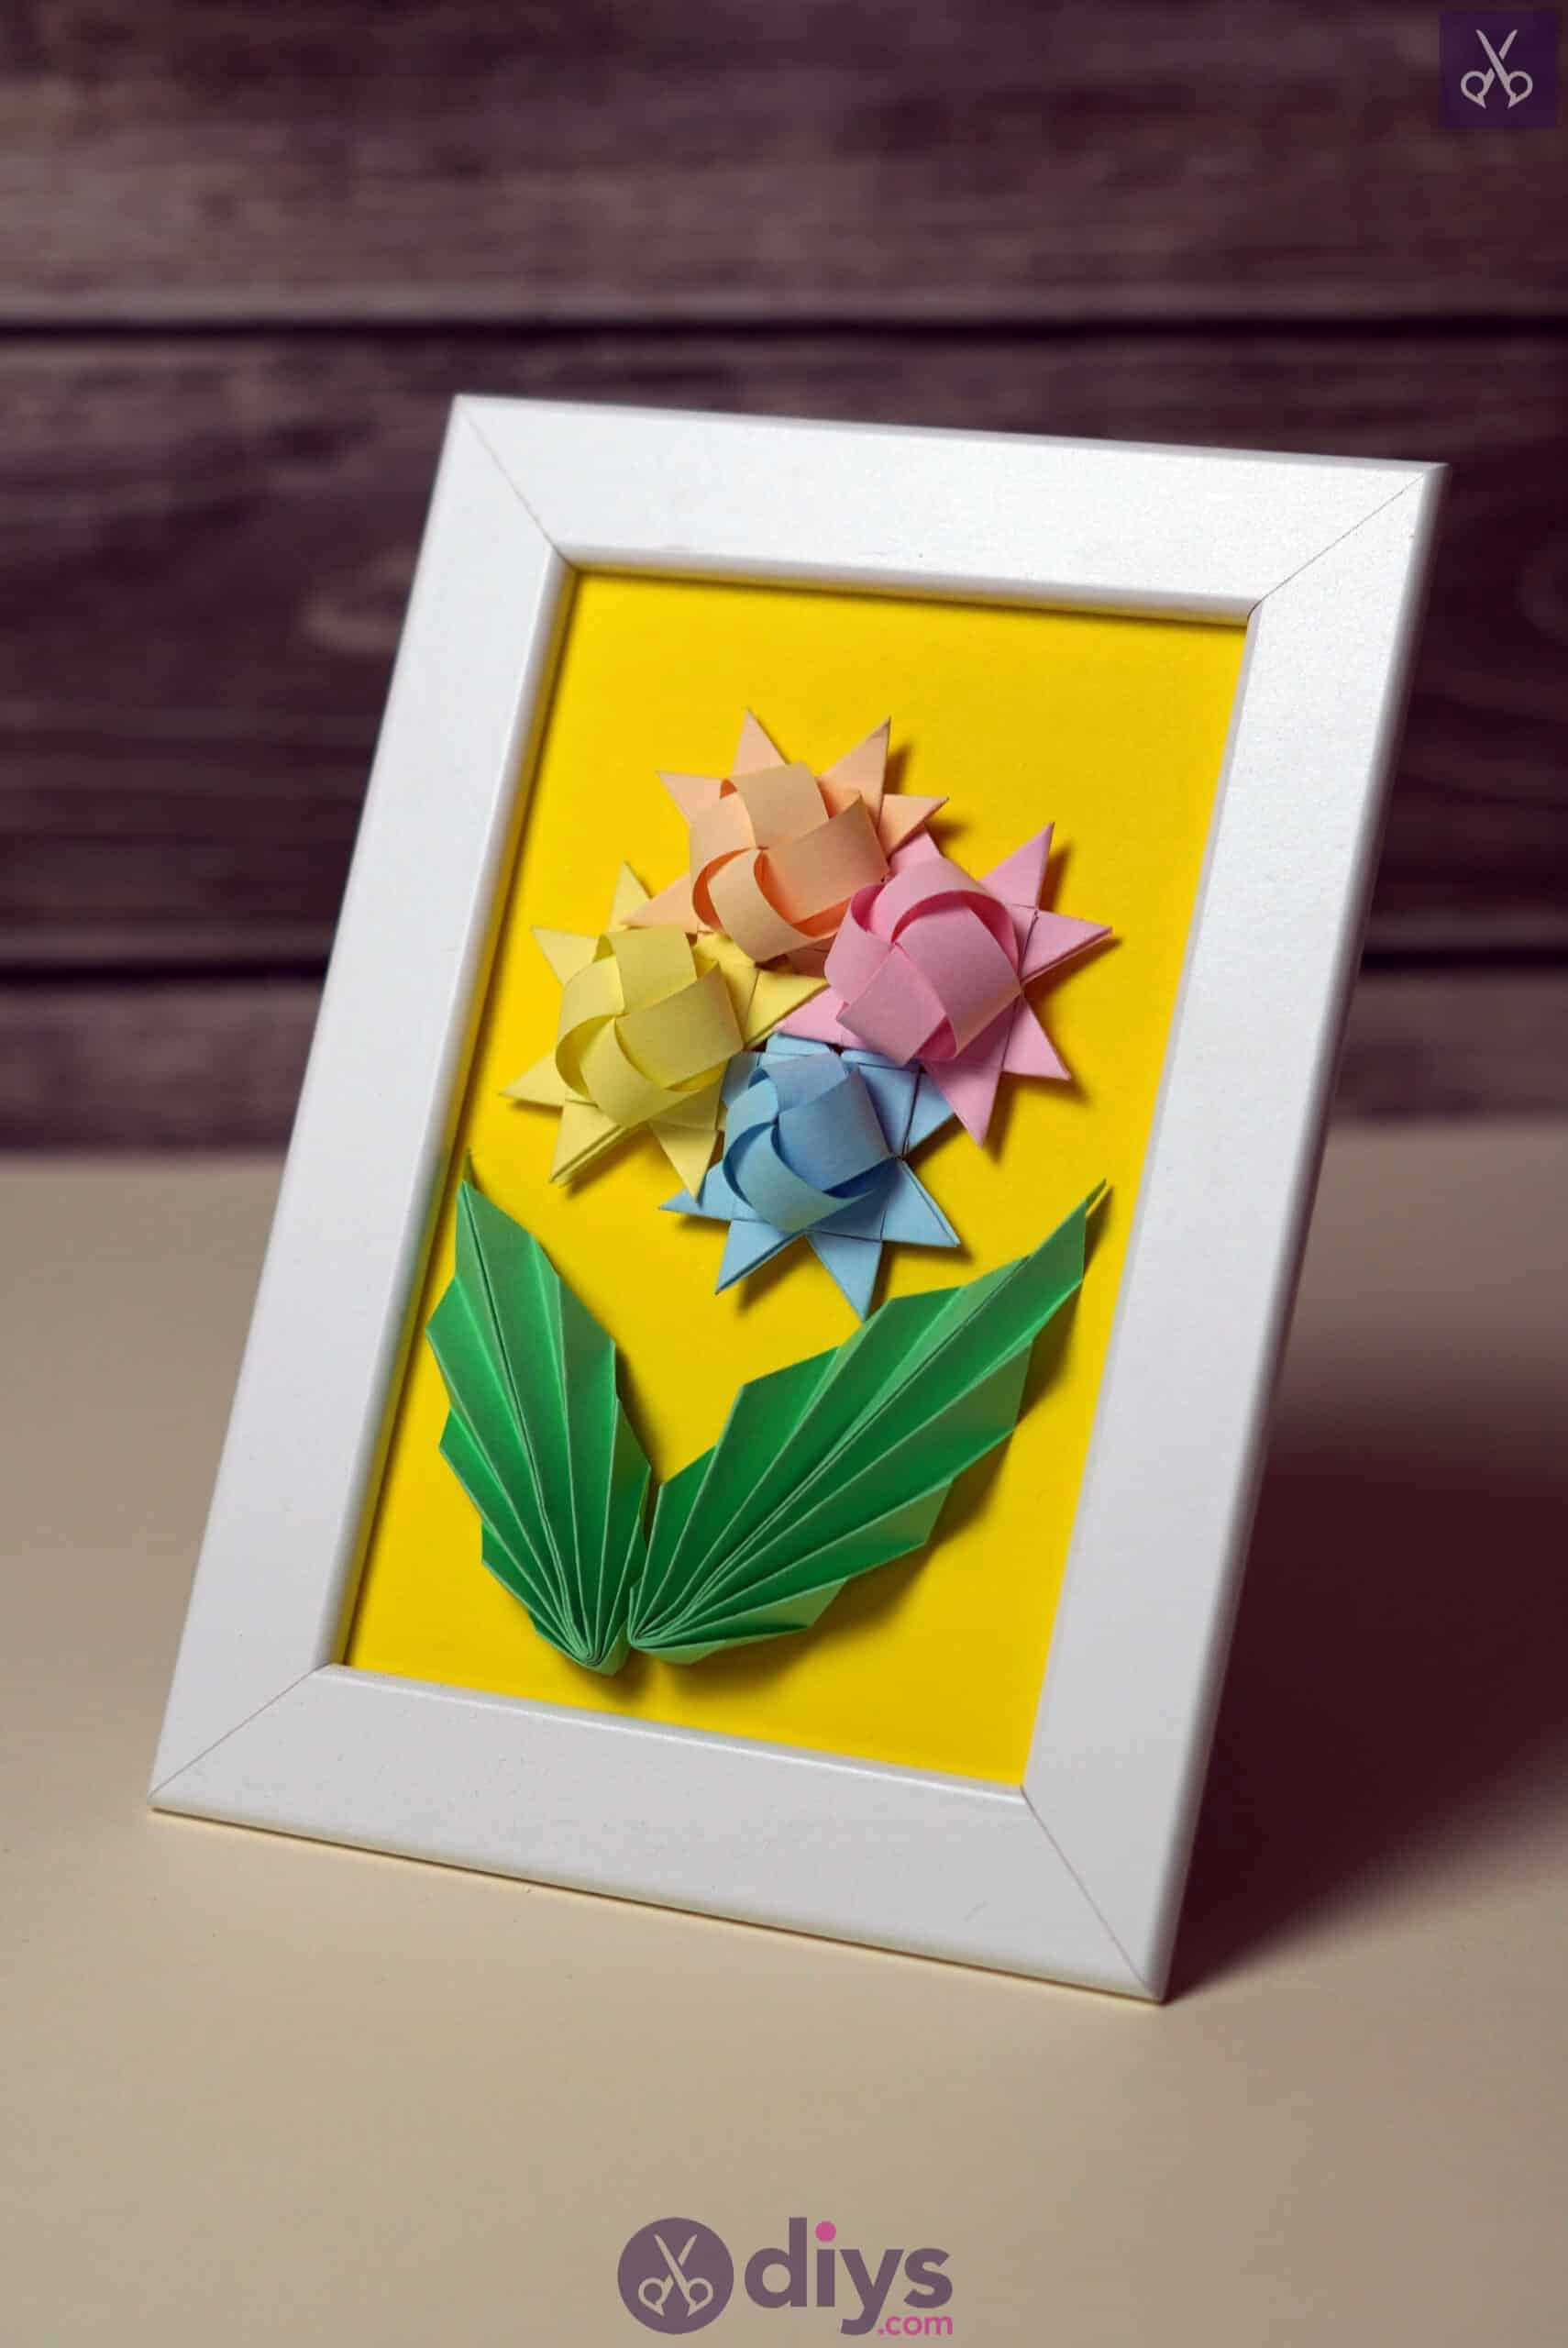 Diy origami flower art projecty